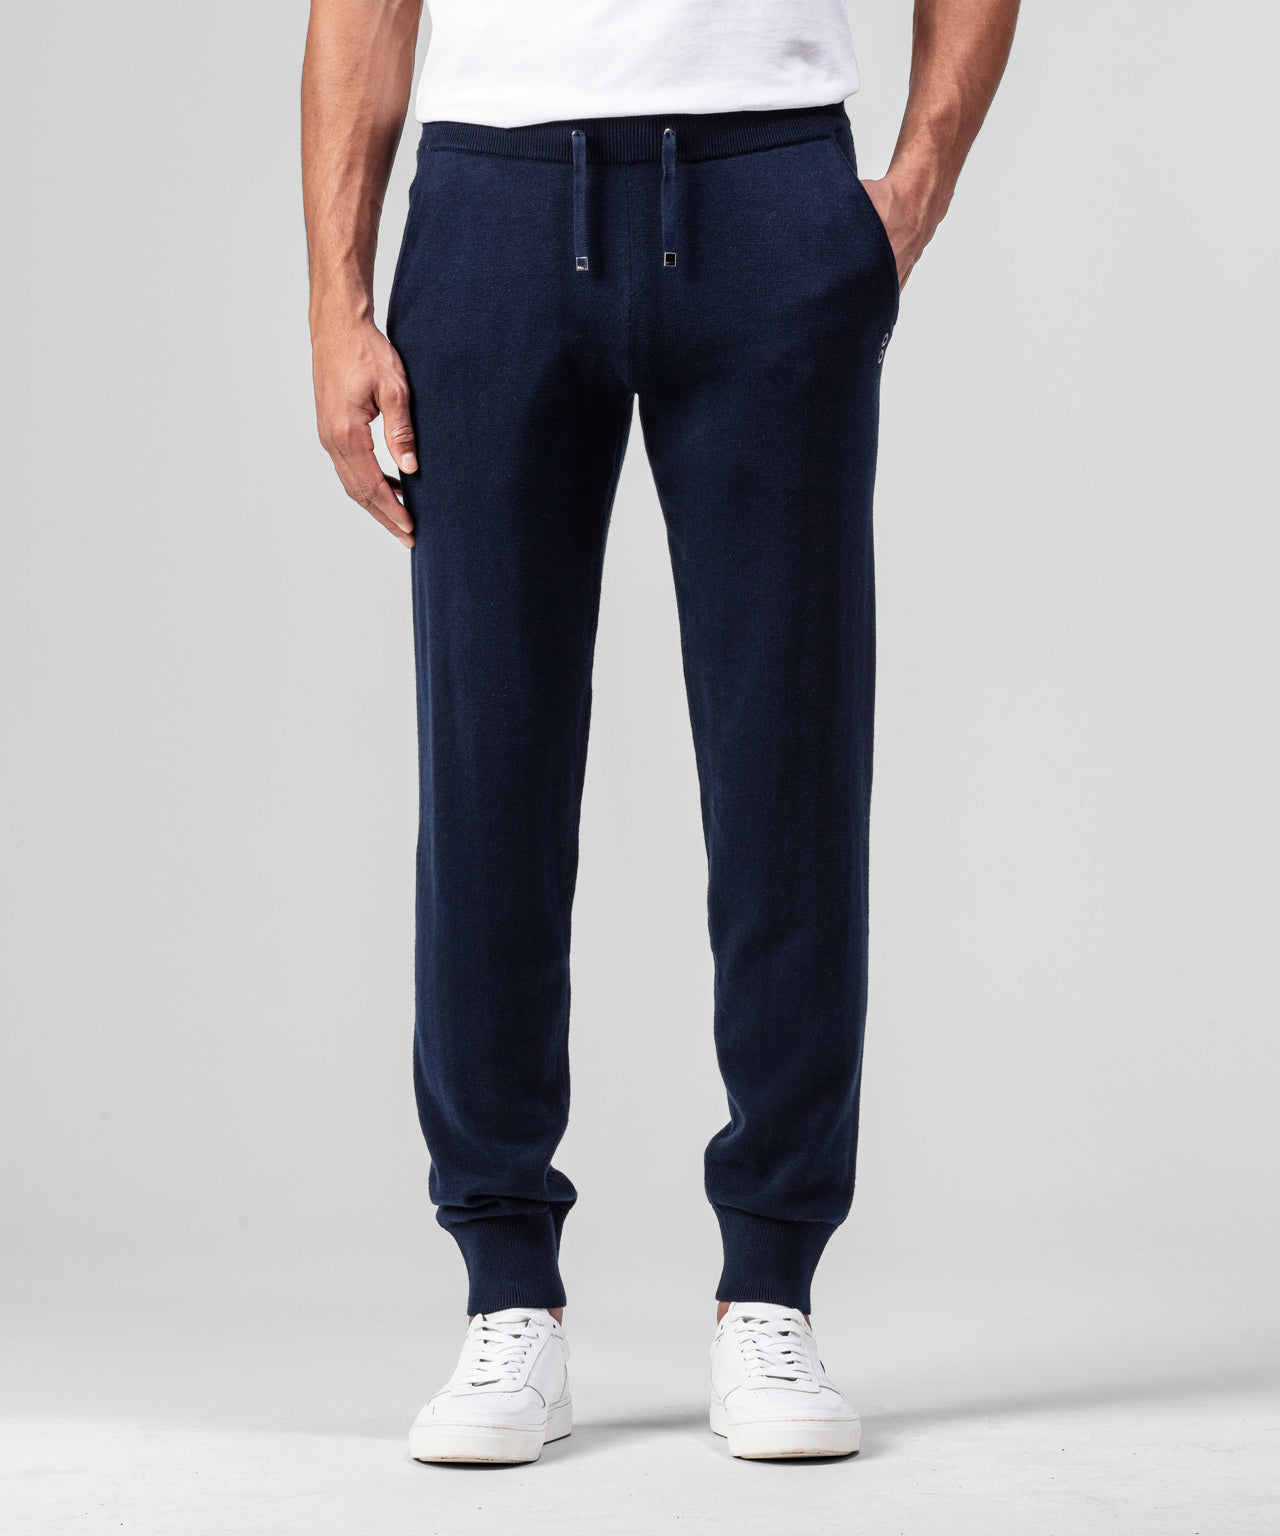 Cotton Cashmere Pants - navy